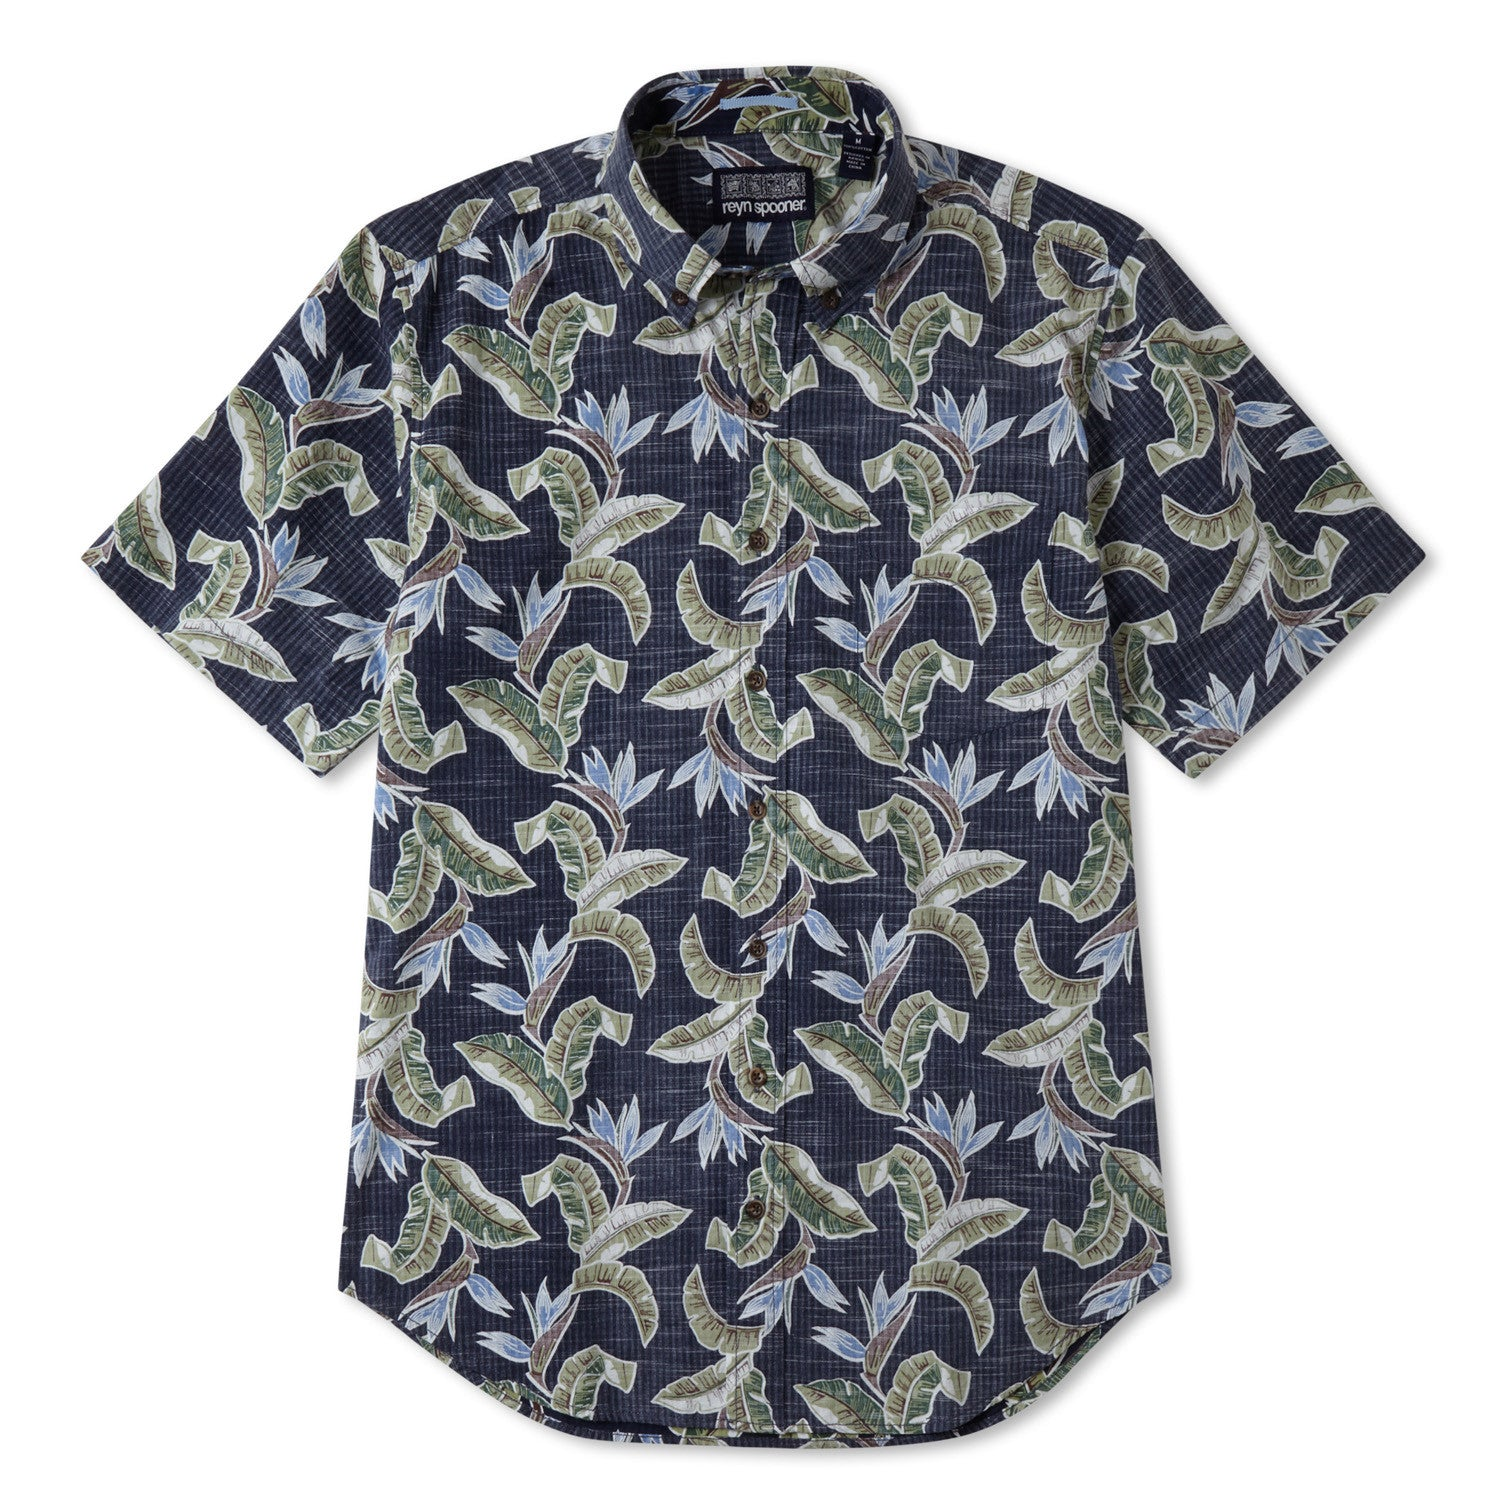 PARADISE PUA / STANDARD FIT - Zoomed